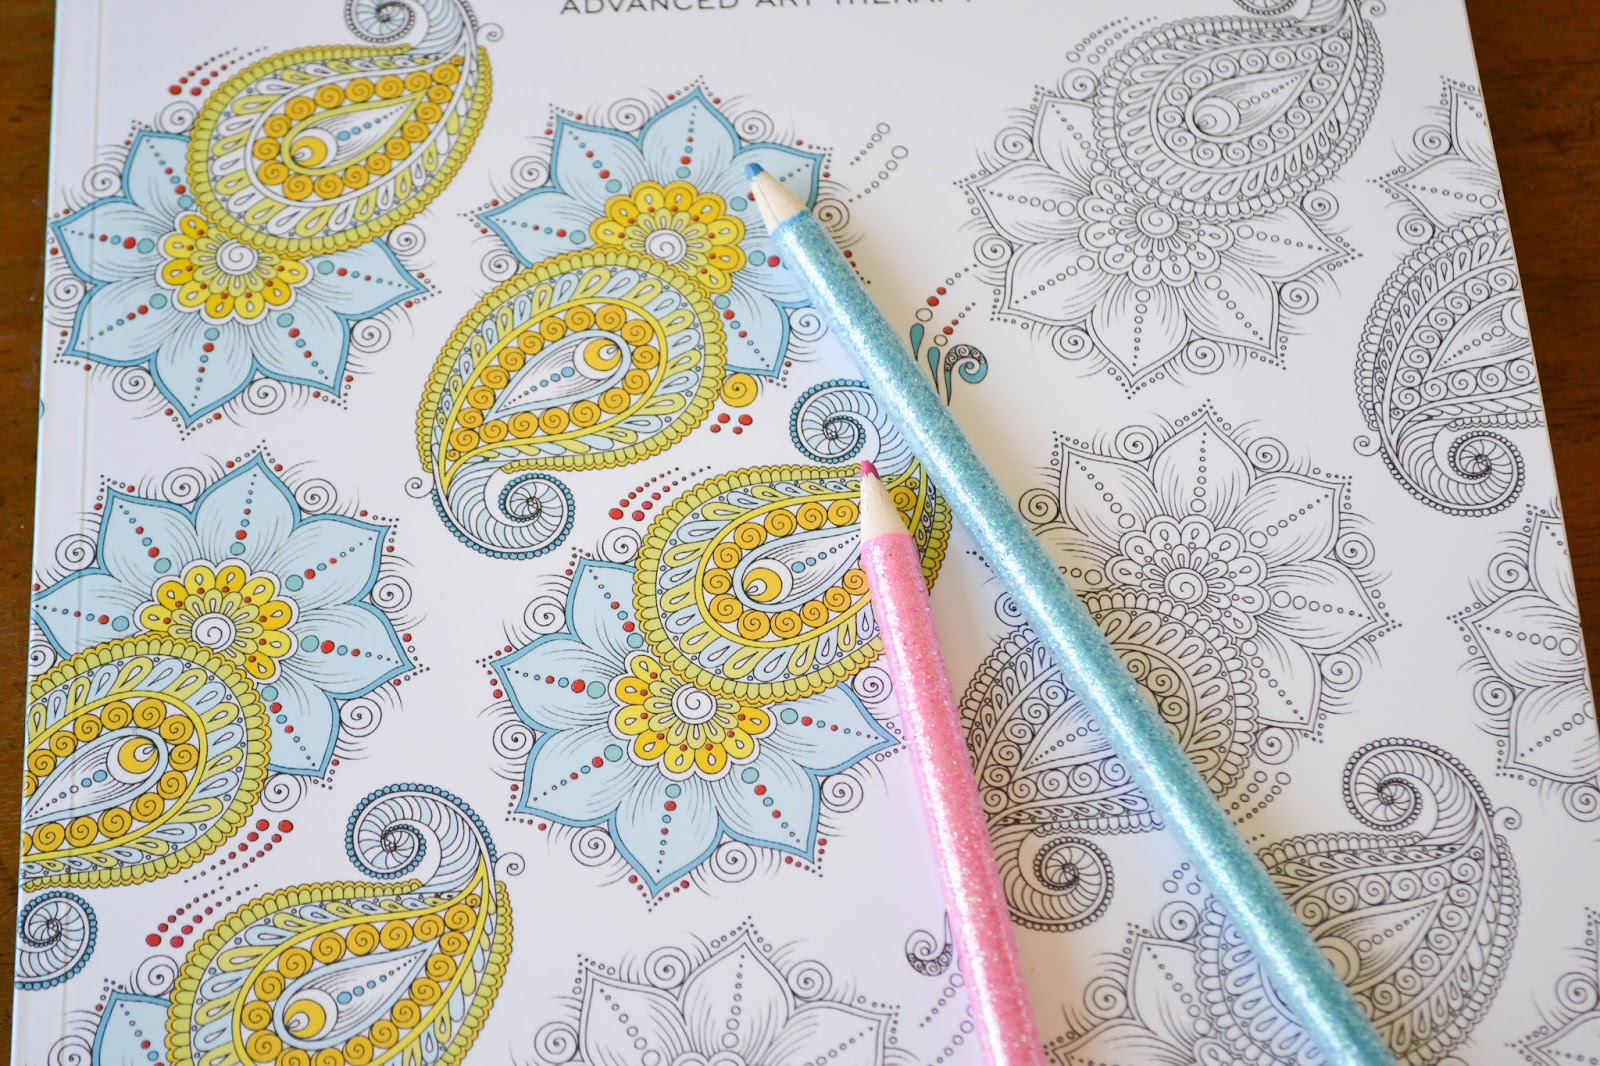 Zen colouring in book - A Few Weeks Ago I Decided That I Would Try Out A Colouring Book For Relaxing After Seeing Lots In The Shops For Grown Ups Lately I Chose Zen Colouring